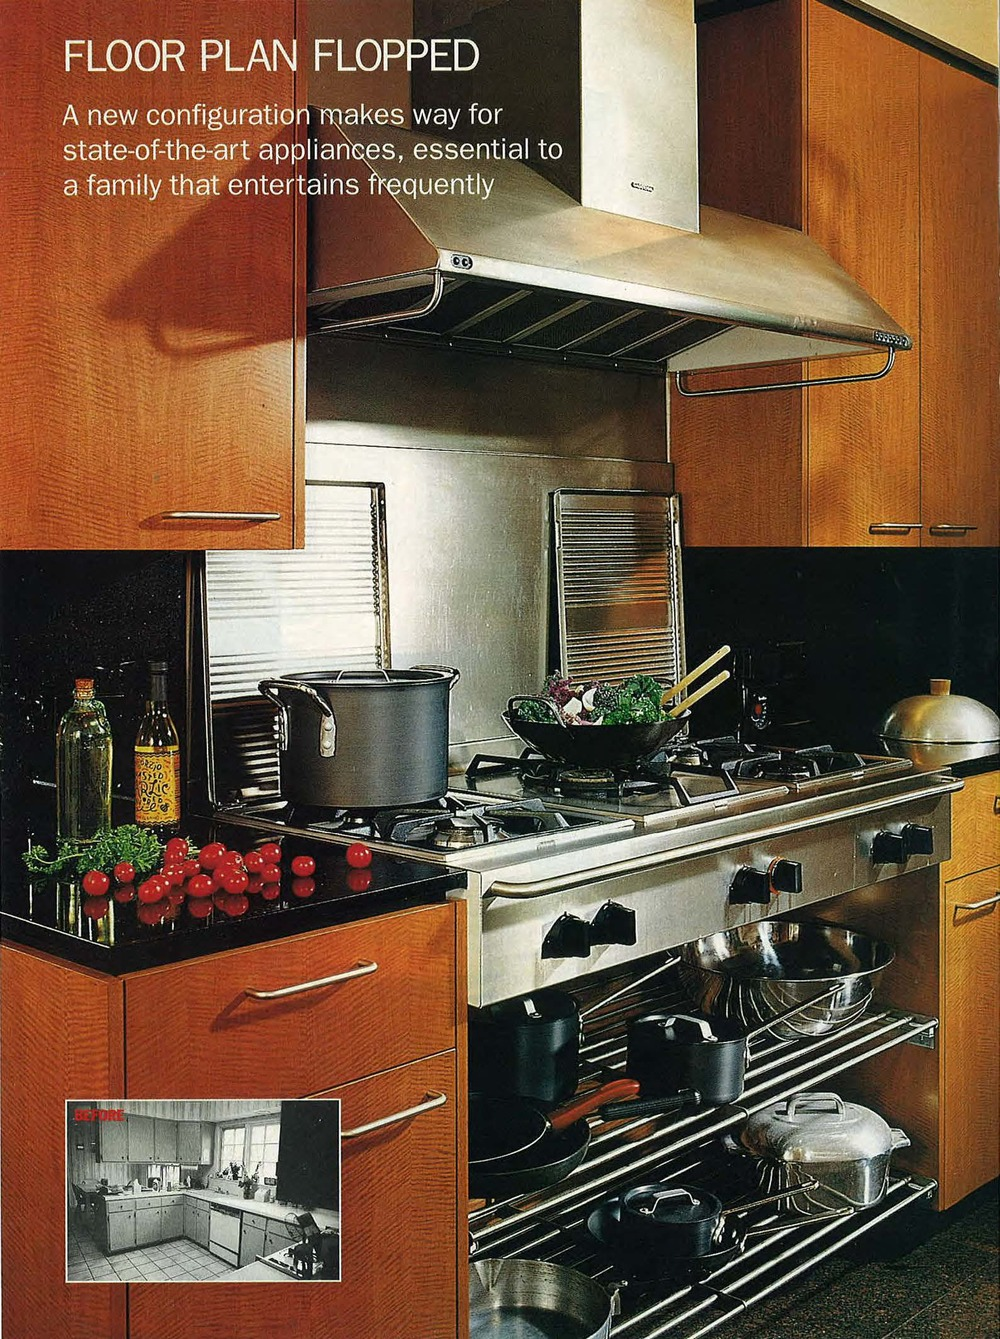 1997 House Beautiful Kitchens & Baths _Page_4.jpg